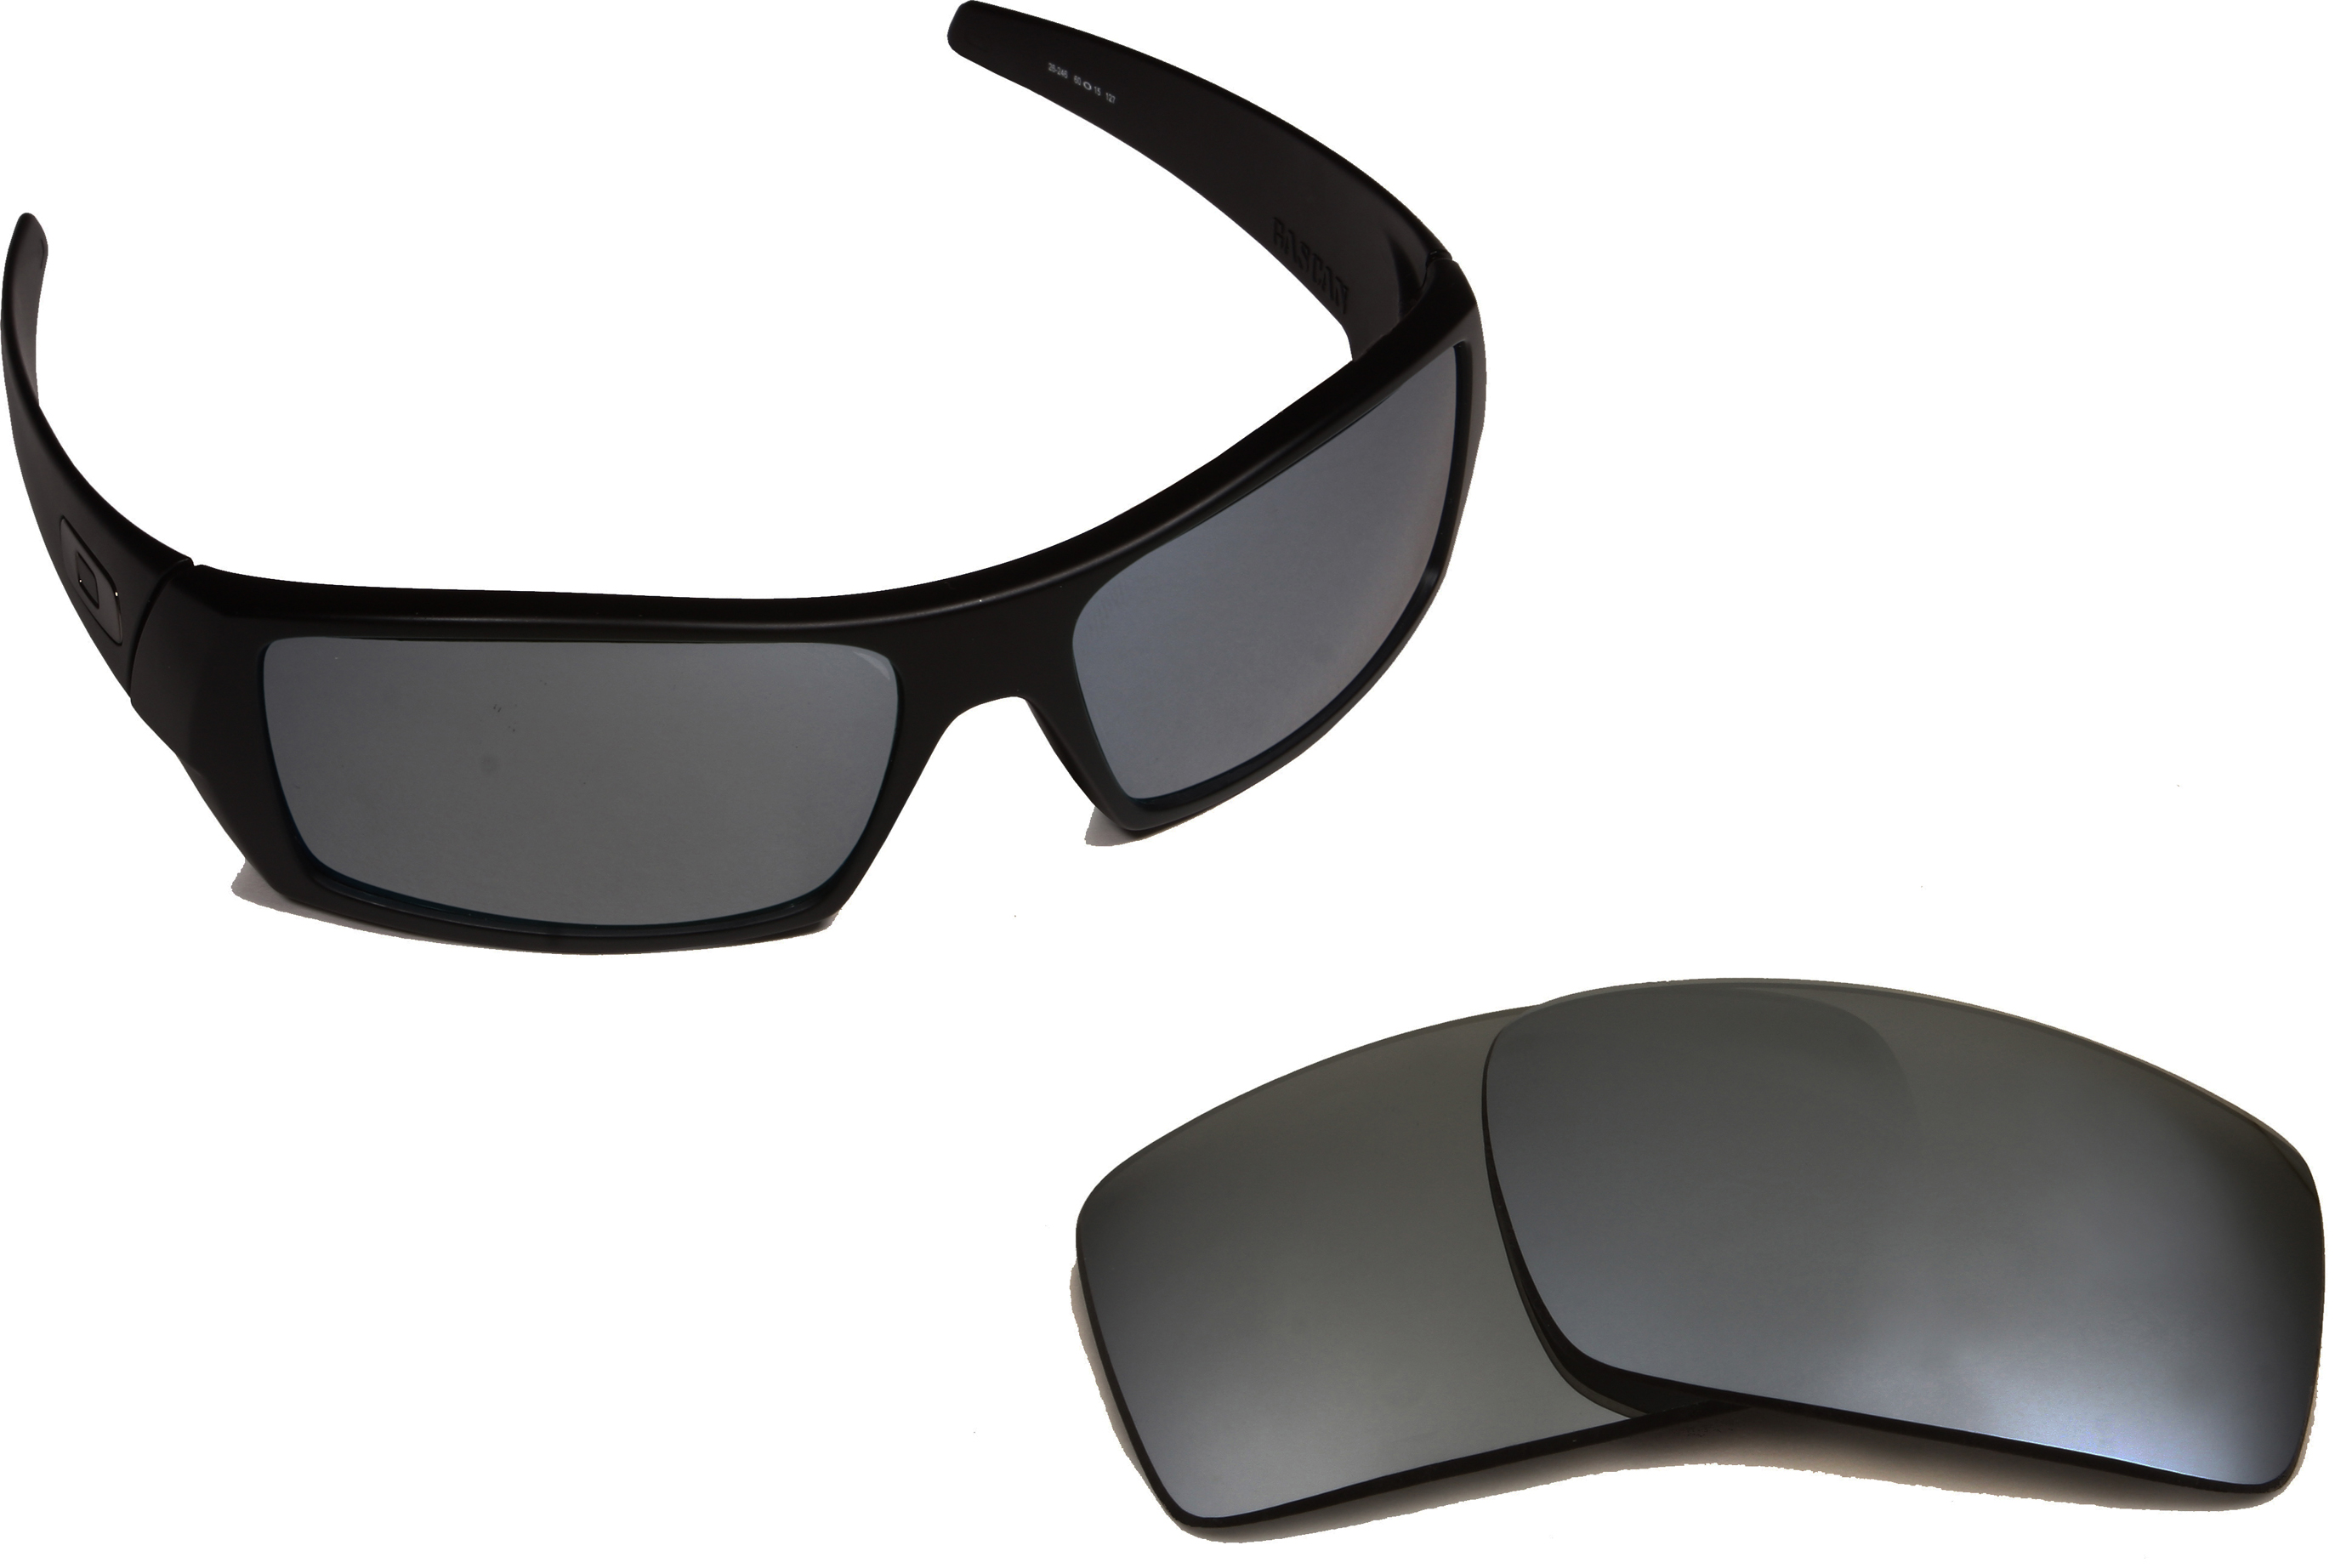 370021d27bbef Gascan S Replacement Lenses by SEEK OPTICS to fit OAKLEY Sunglasses ...